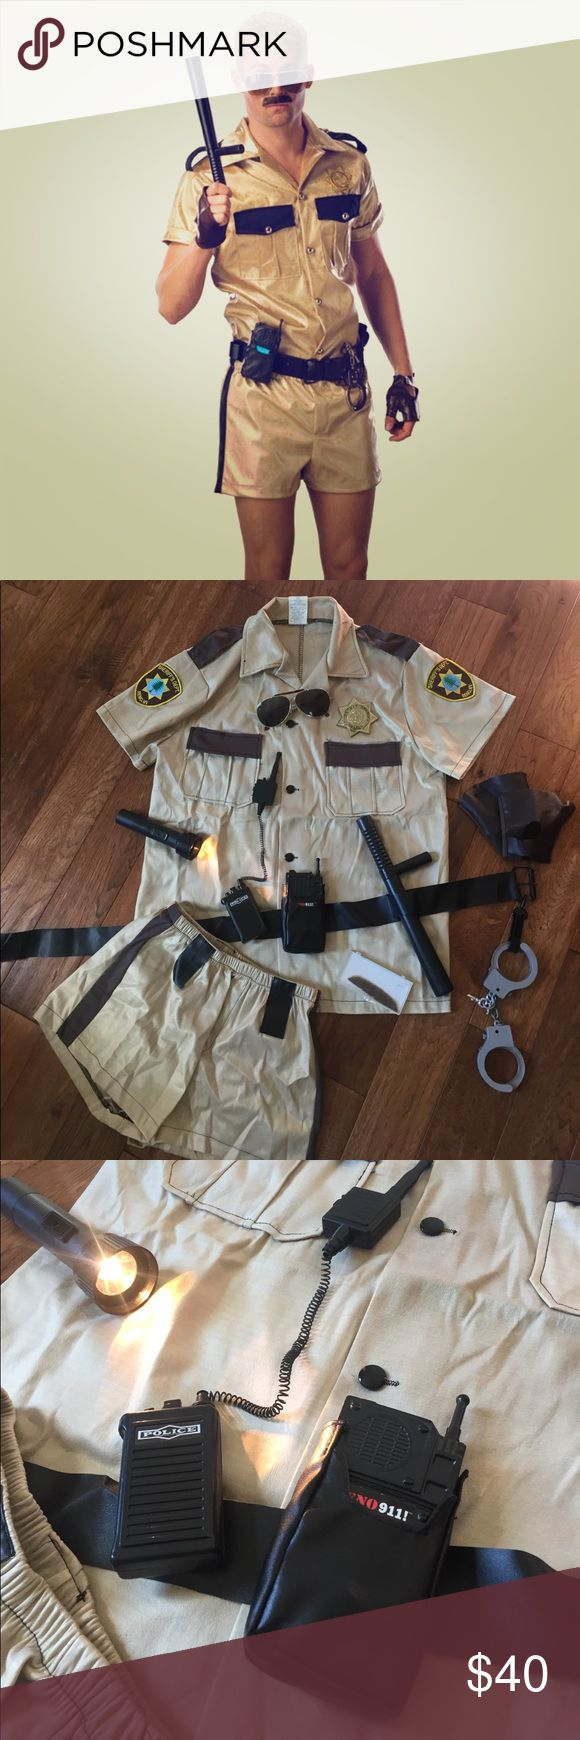 LT. Dangle Reno 911 Halloween Costume This was hands down the most funny costume my husband has ever worn!  I would never sell it if I knew I could get him to wear it again. Pair w/ a jockstrap underneath to bring it to the next level.  Size medium, fits up to 44 jacket size. Includes shirt, shorts, badge, mustache to adhere, utility belt that includes several misc items in picture, gloves (one has a slight tear), a working flashlight (batteries not included for shipping purposes) and a pair…